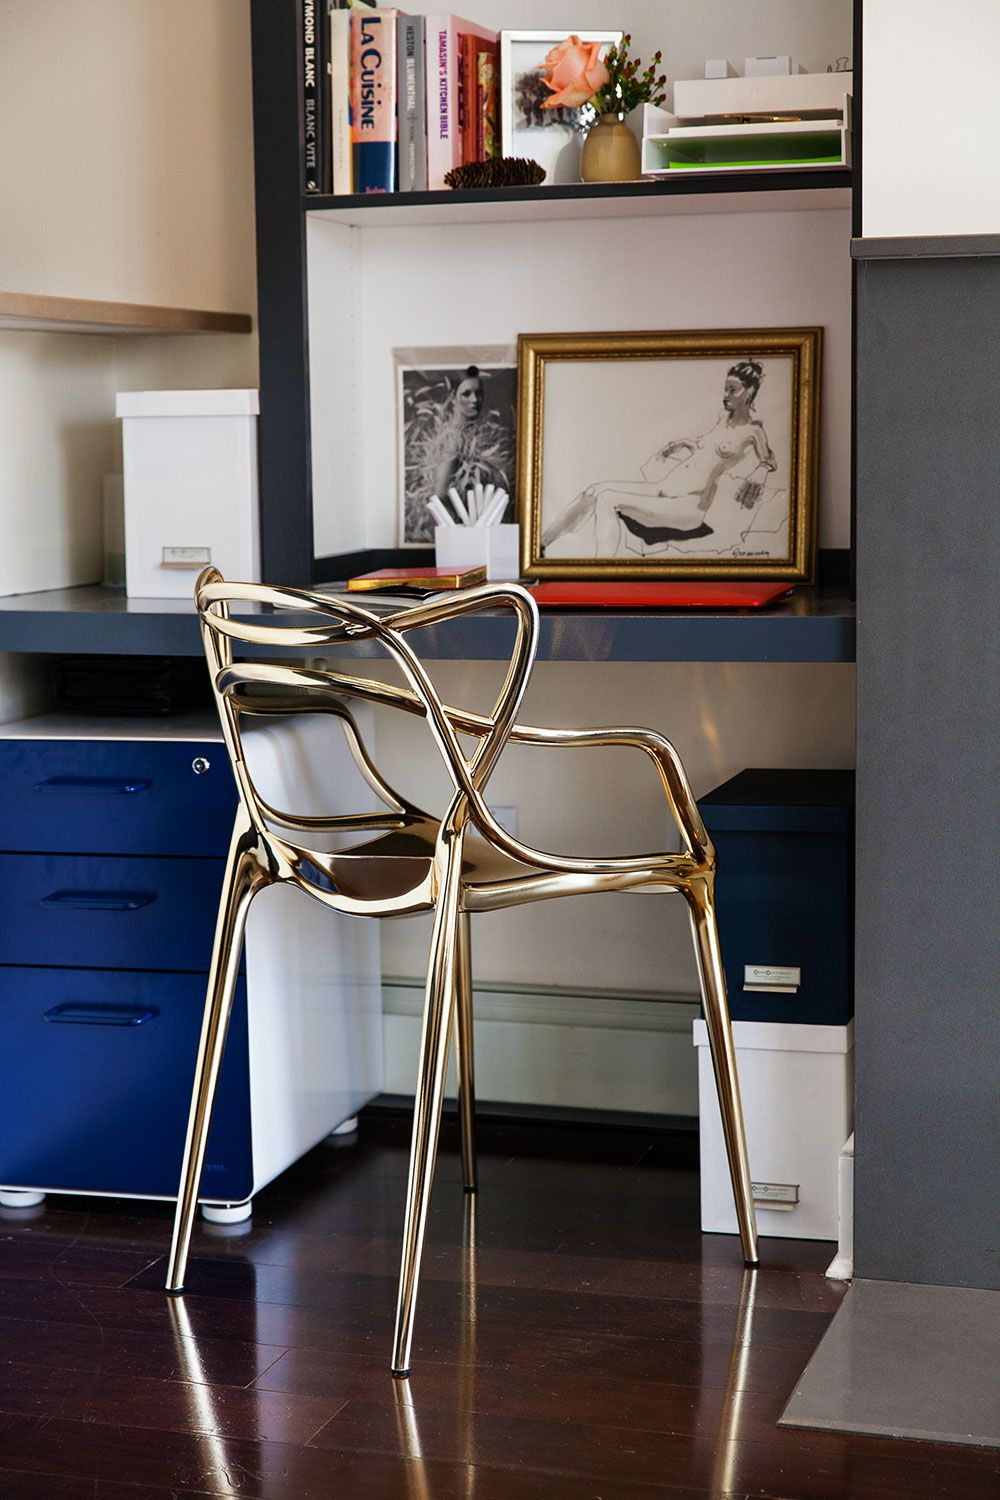 Mobili Per Ufficio Kartell A Sleek Gold Kartell Chair Elevates A Minimal Corner Work Space